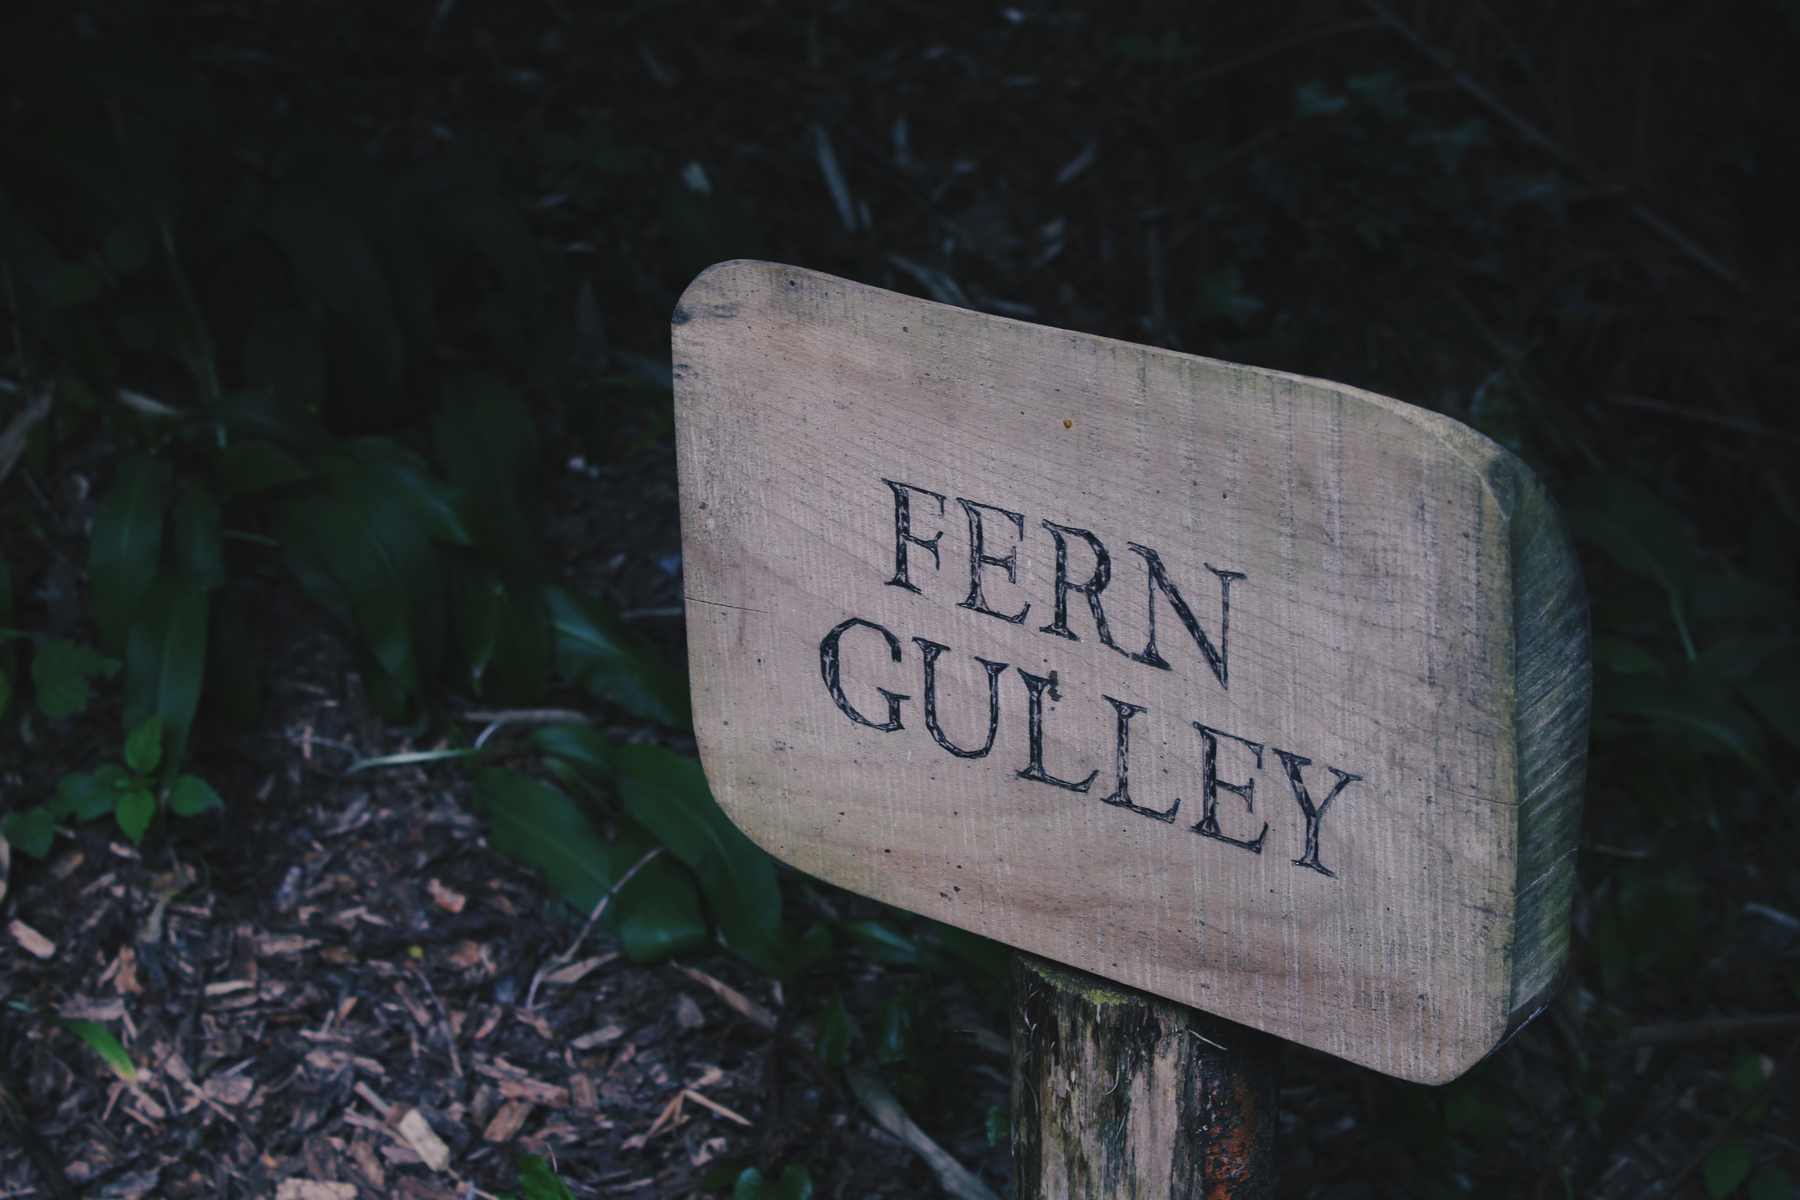 Fern Gulley Sign, Lost Gardens of Heligan